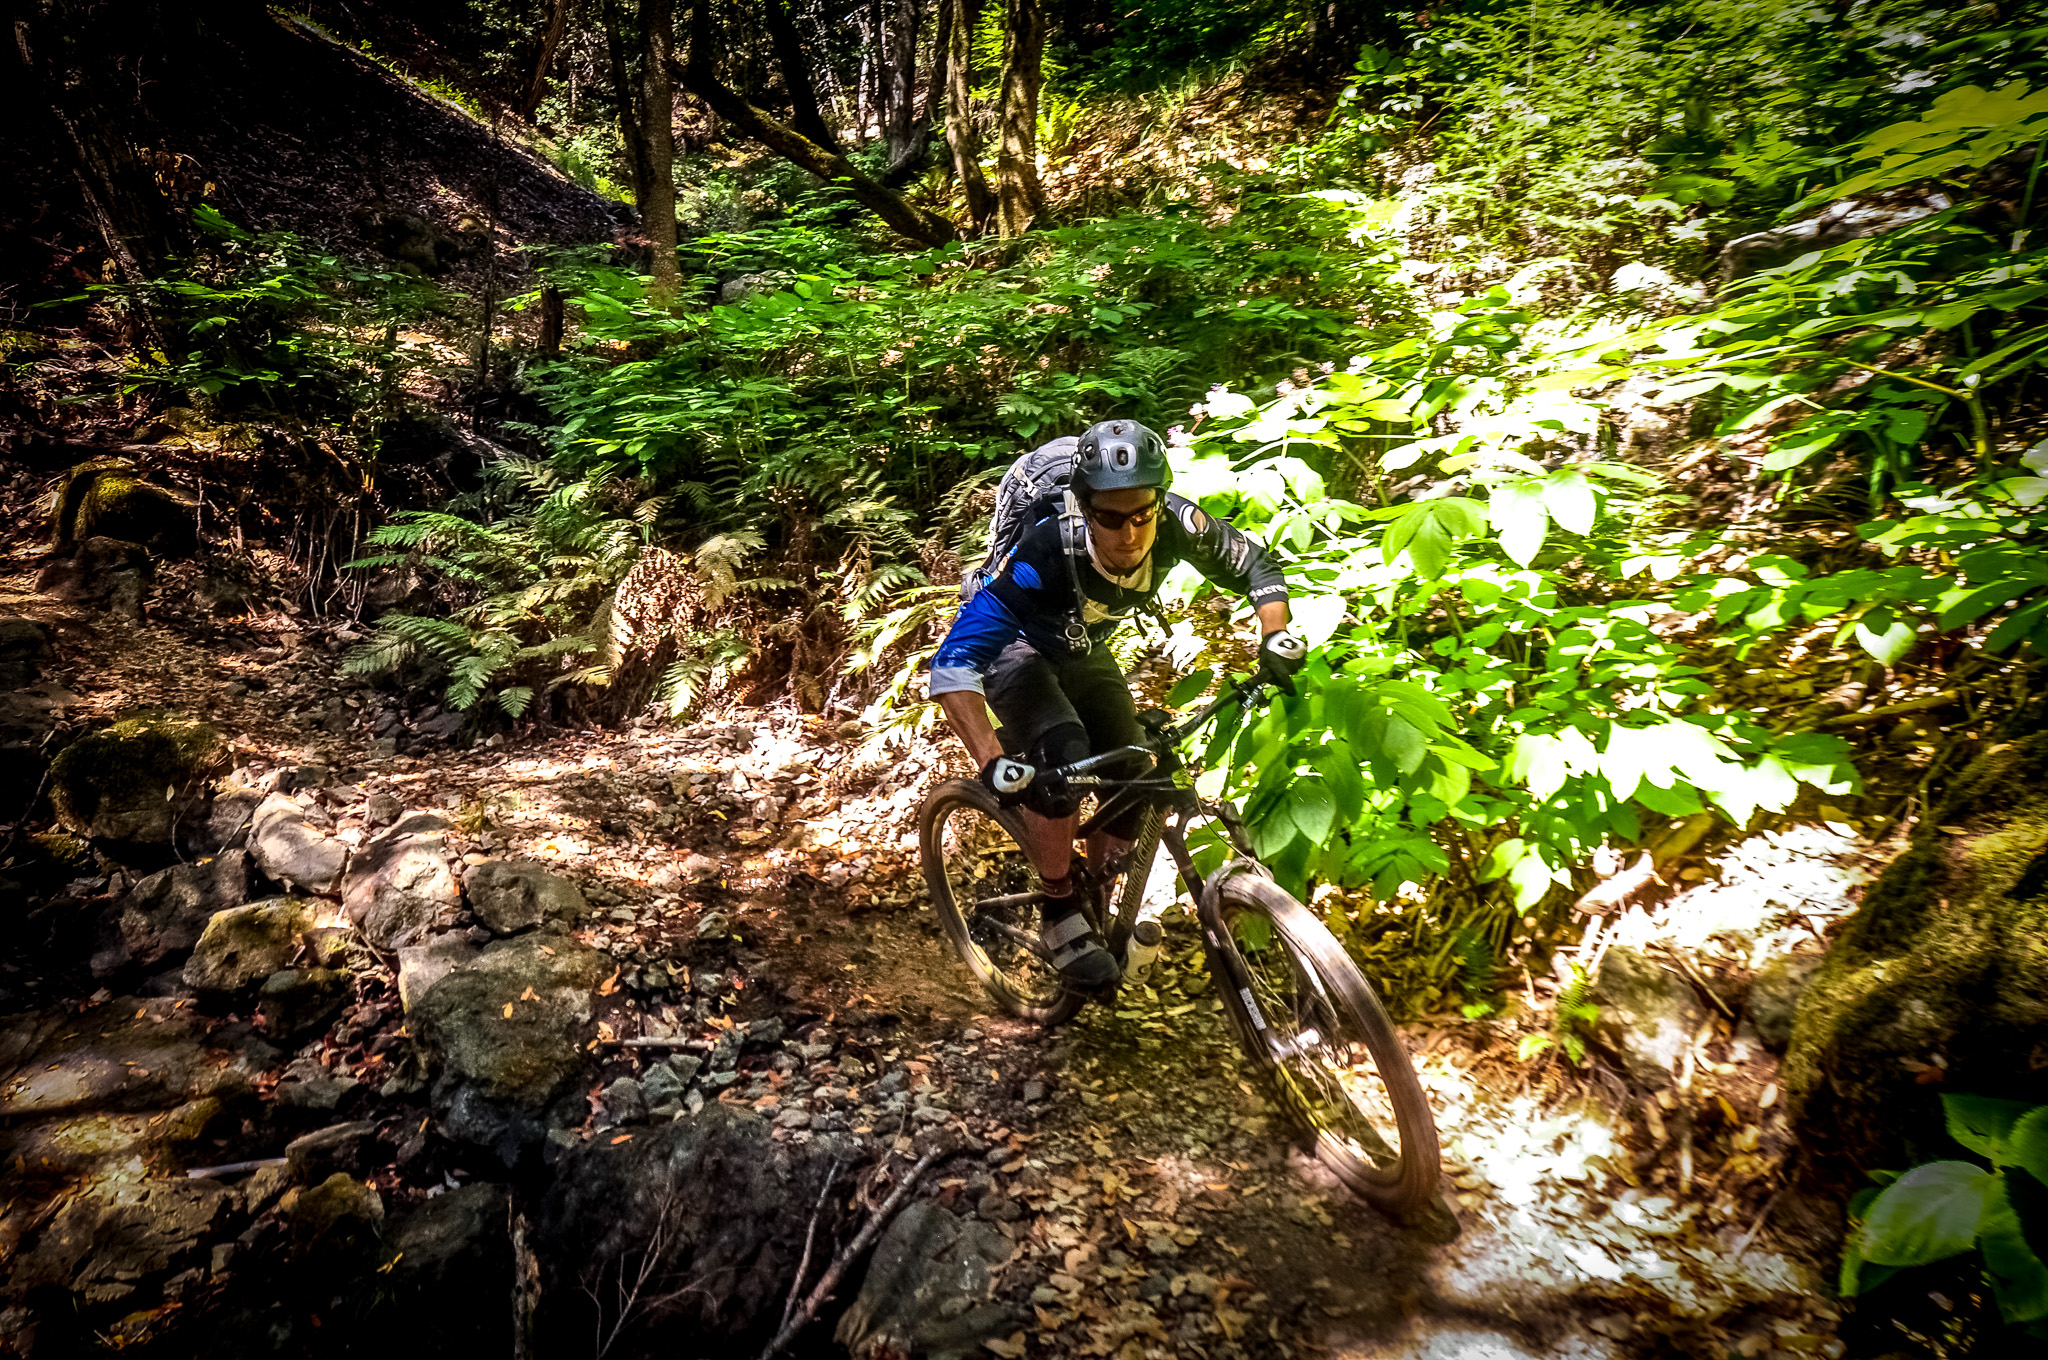 Descend IMBA designed purpose built trails